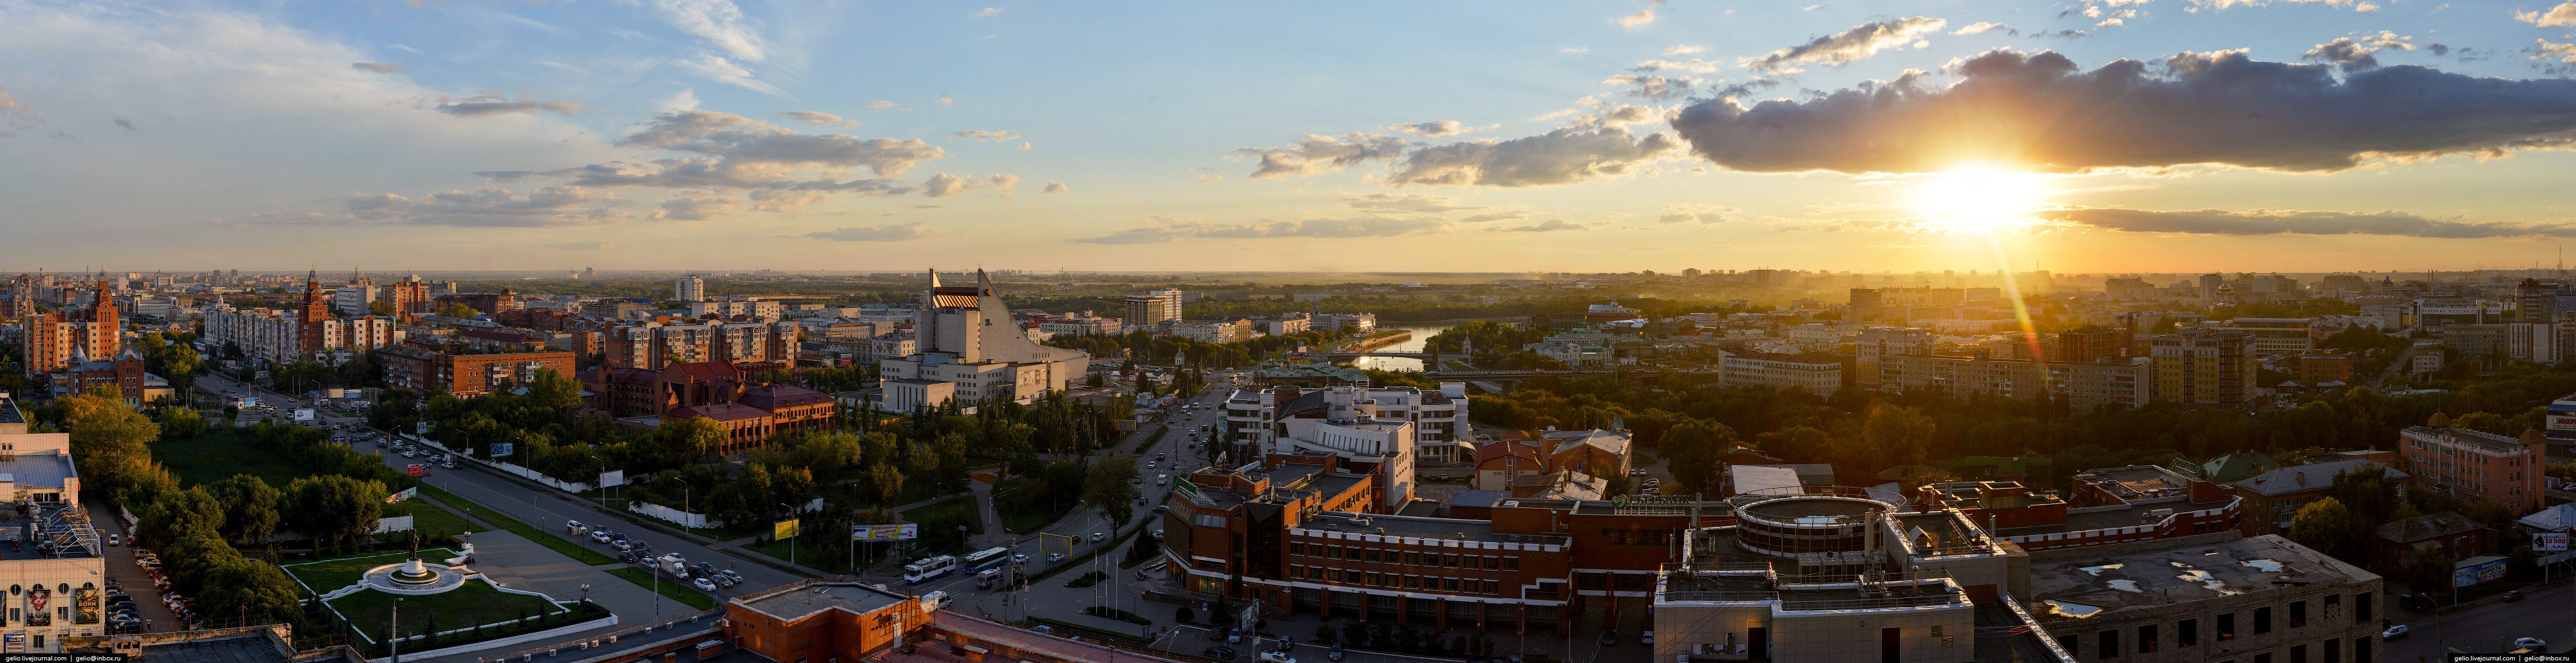 Omsk is 300 years old. Views of the city from a height